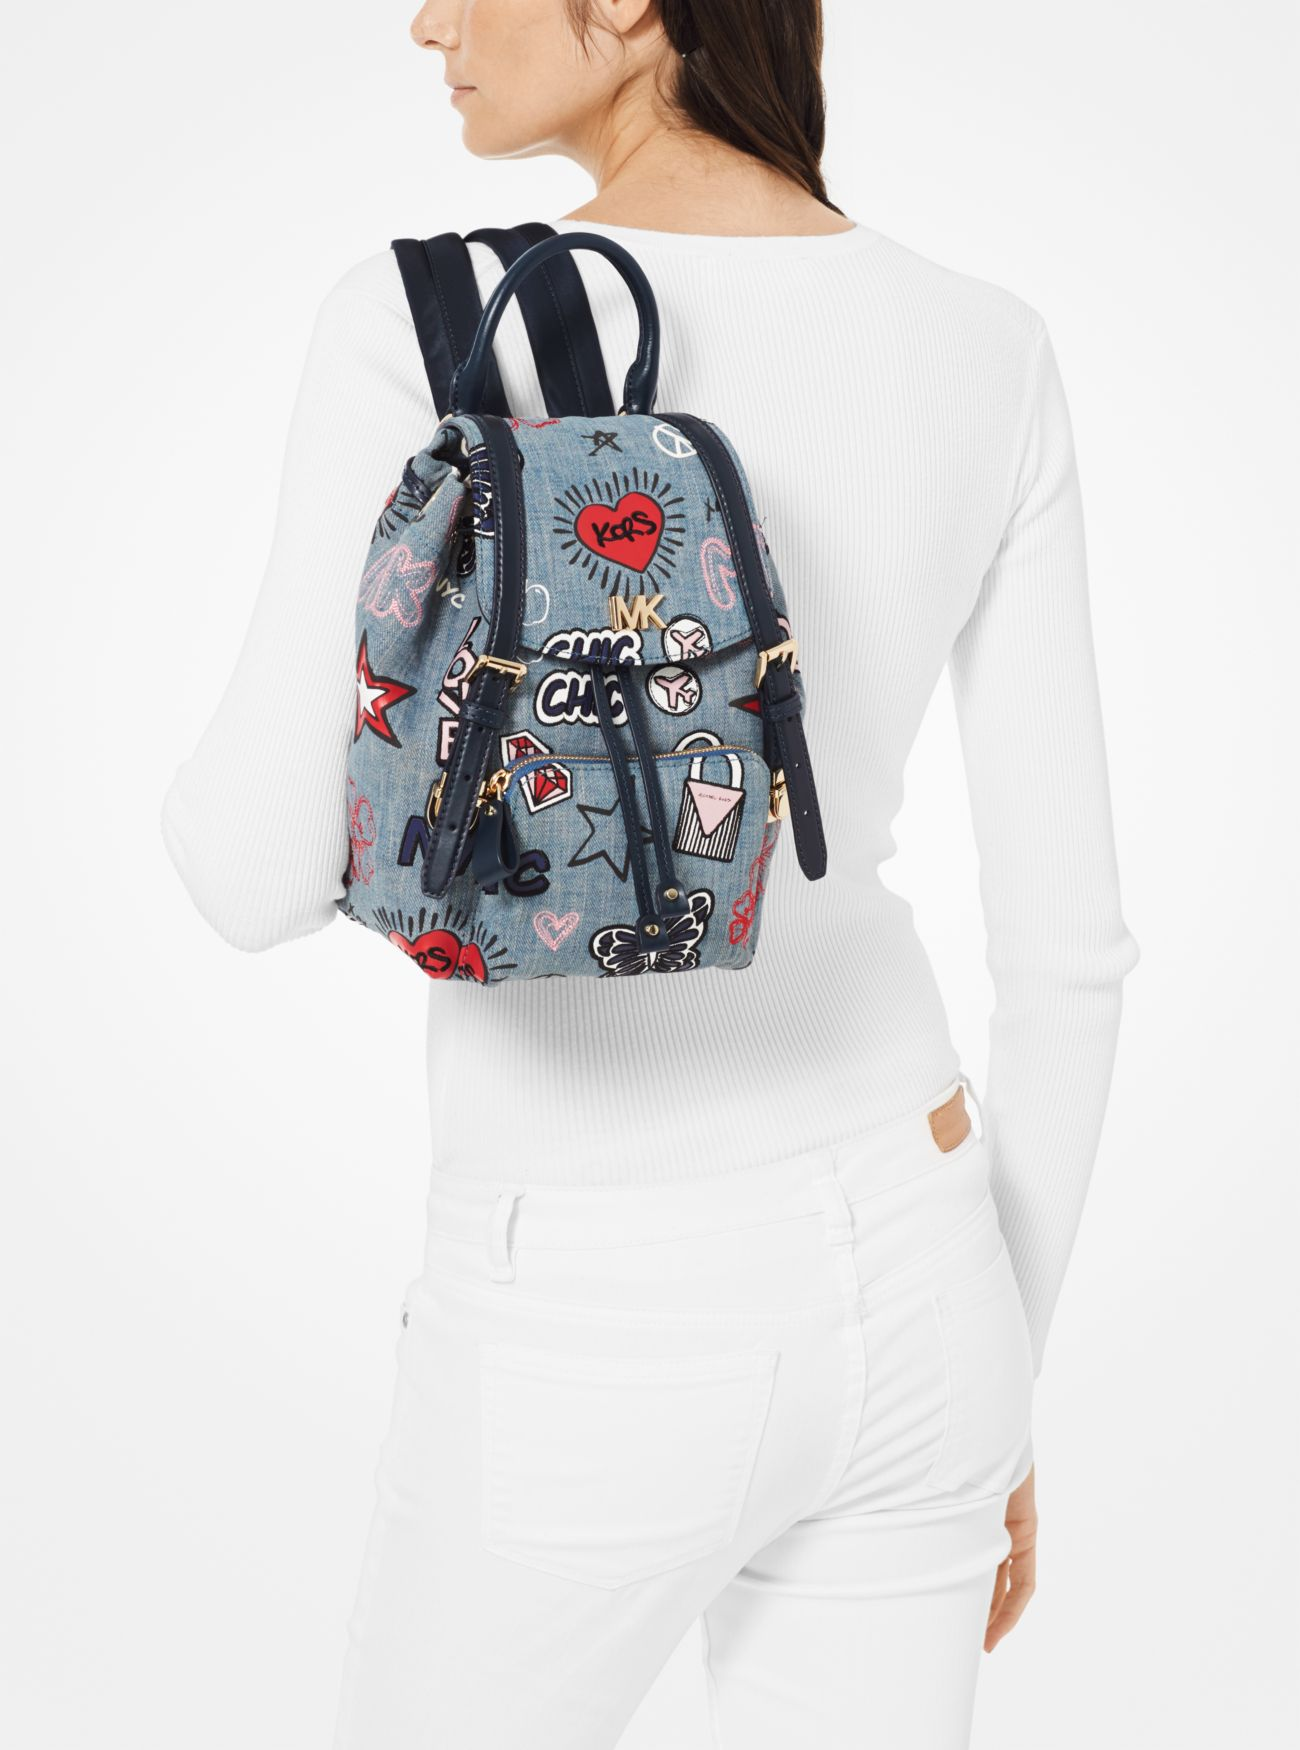 363513e1957c ... Beacon Small Embroidered Denim Backpack Beacon Small Embroidered Denim Backpack  Beacon Small Embroidered Denim Backpack. MICHAEL Michael Kors